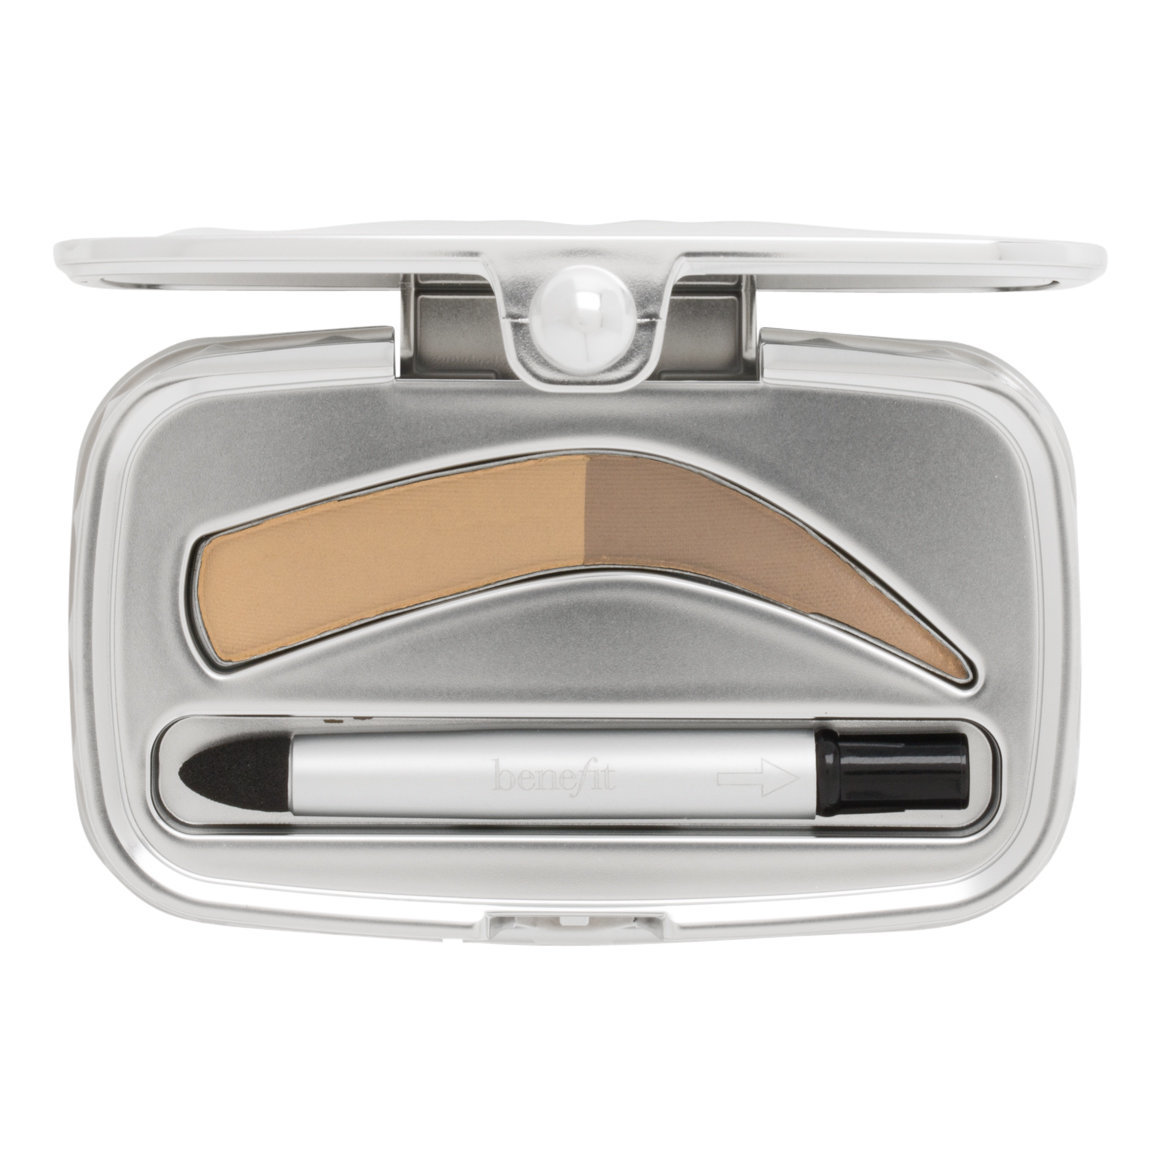 Benefit Cosmetics Foolproof Brow Powder 01 Light product smear.